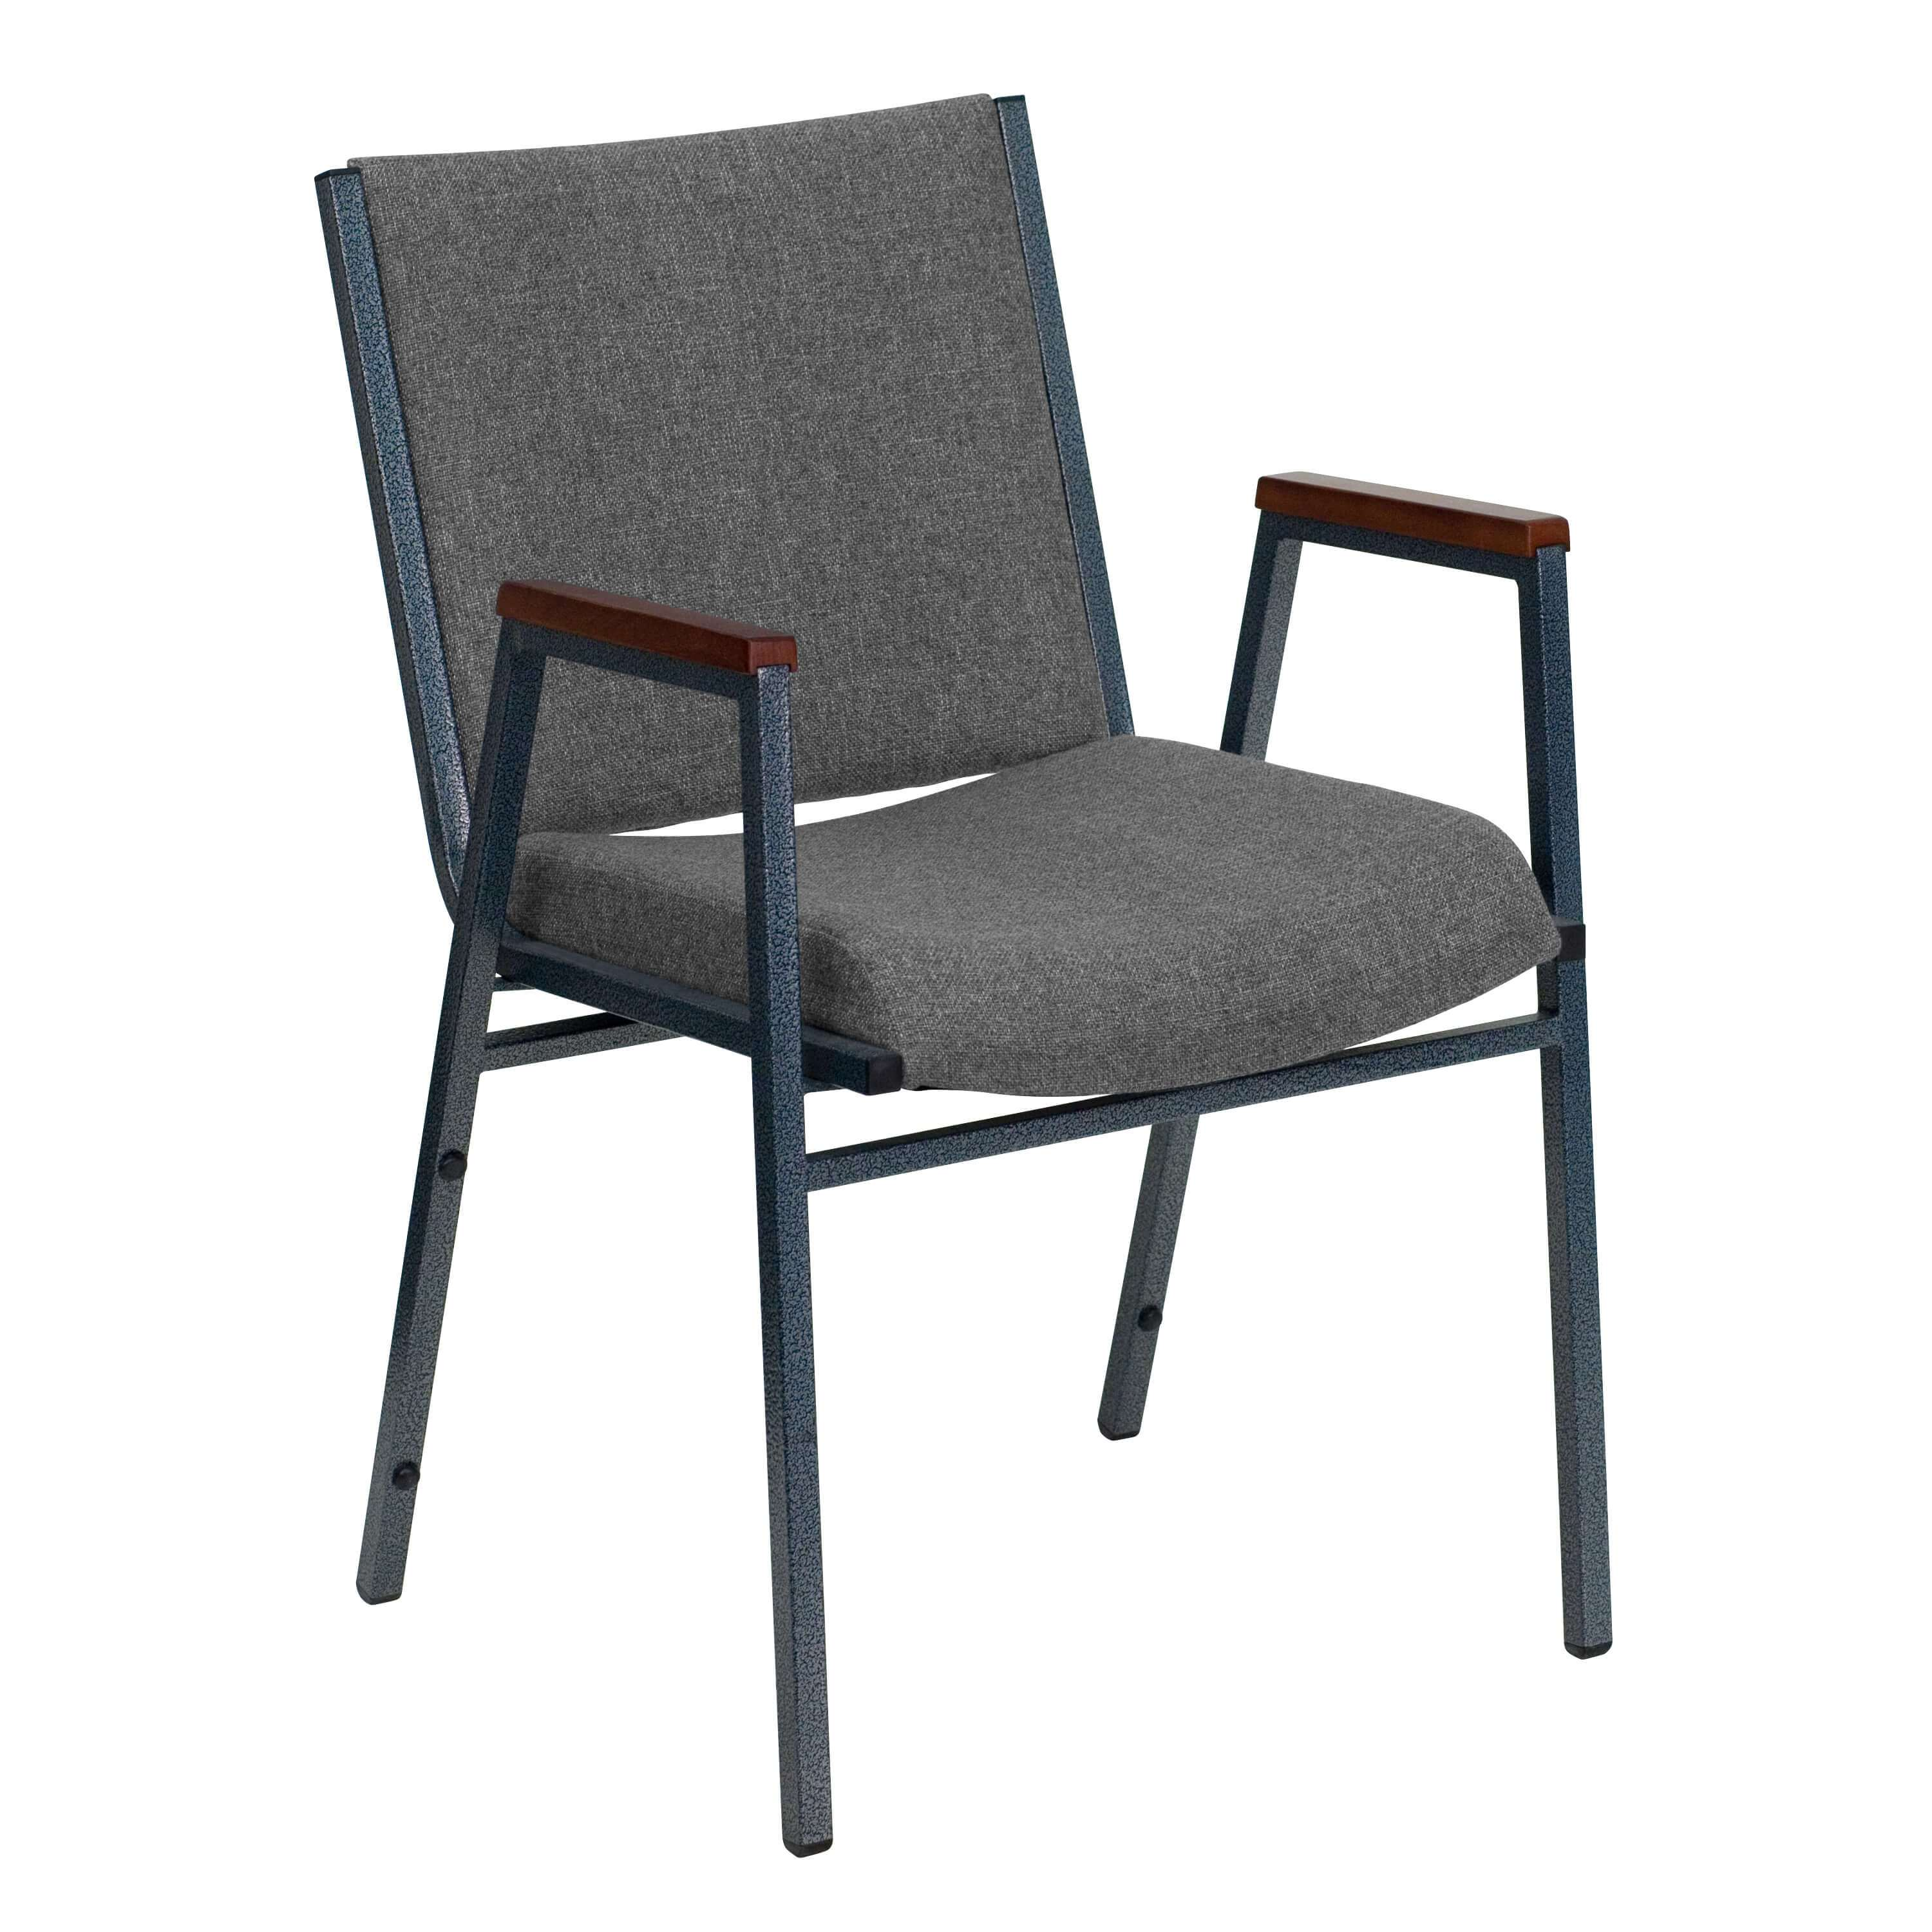 Stackable chairs CUB XU 60154 GY GG FLA